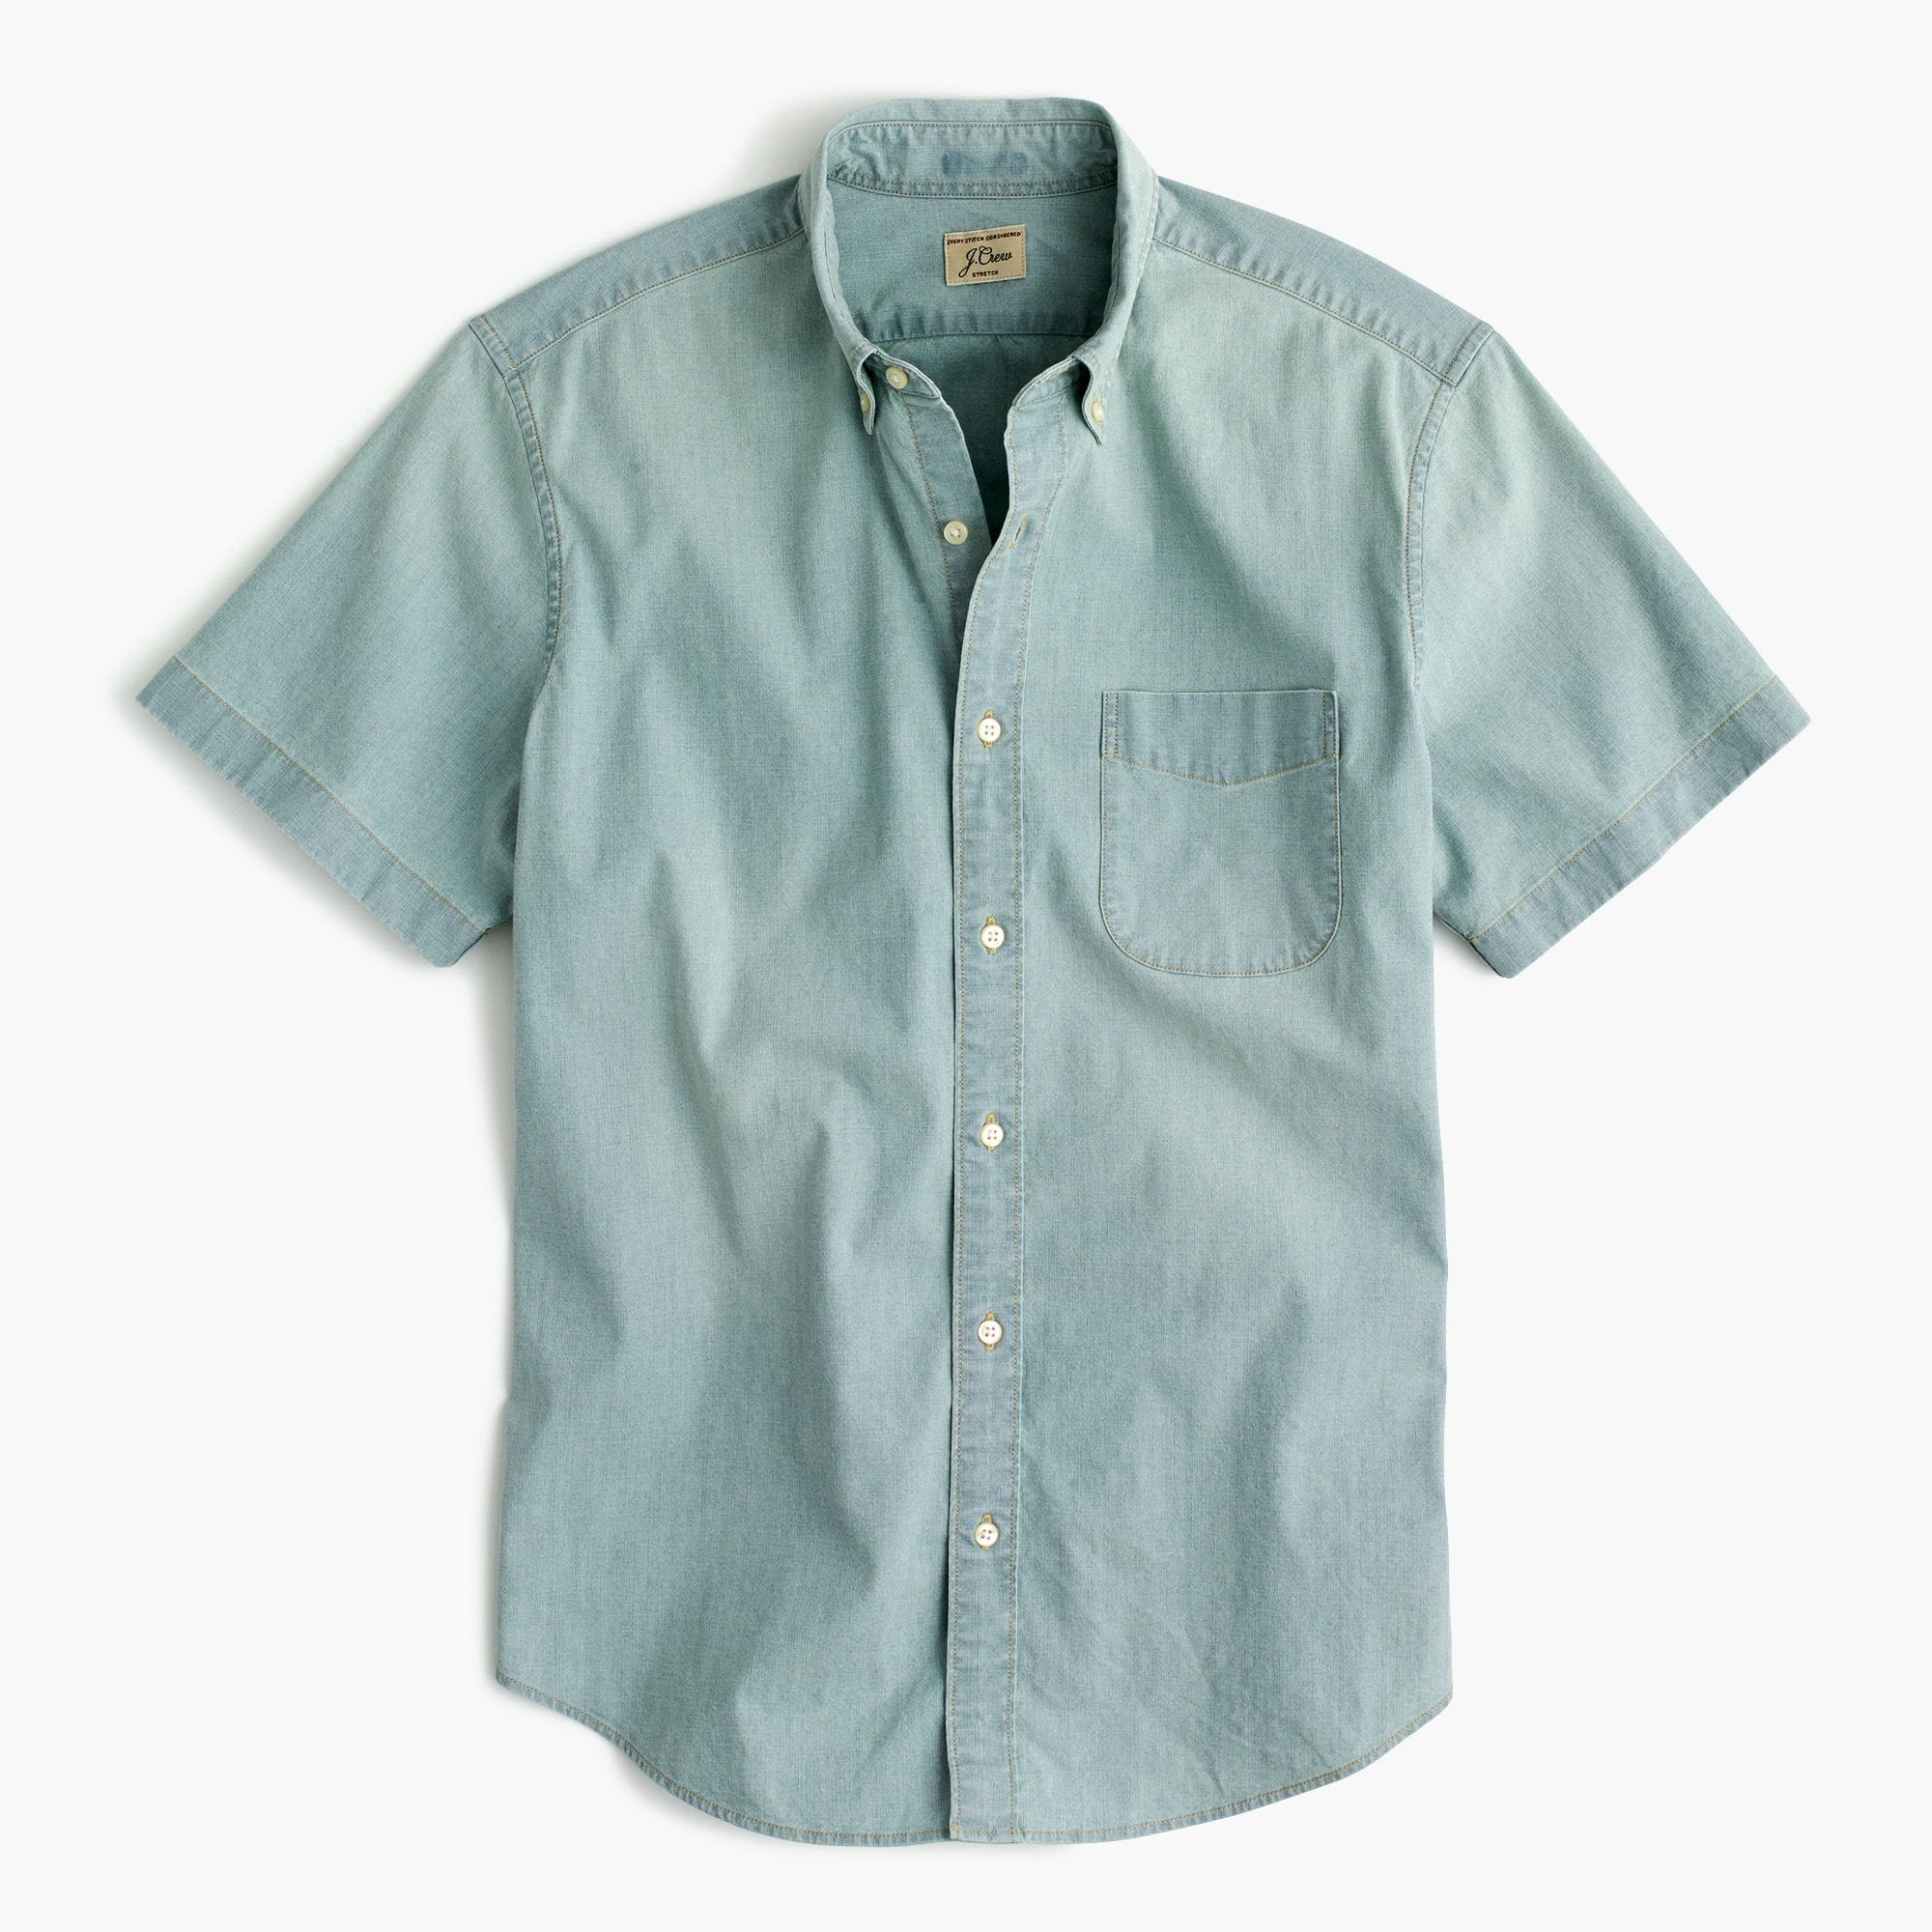 mens Stretch short-sleeve shirt in light wash chambray